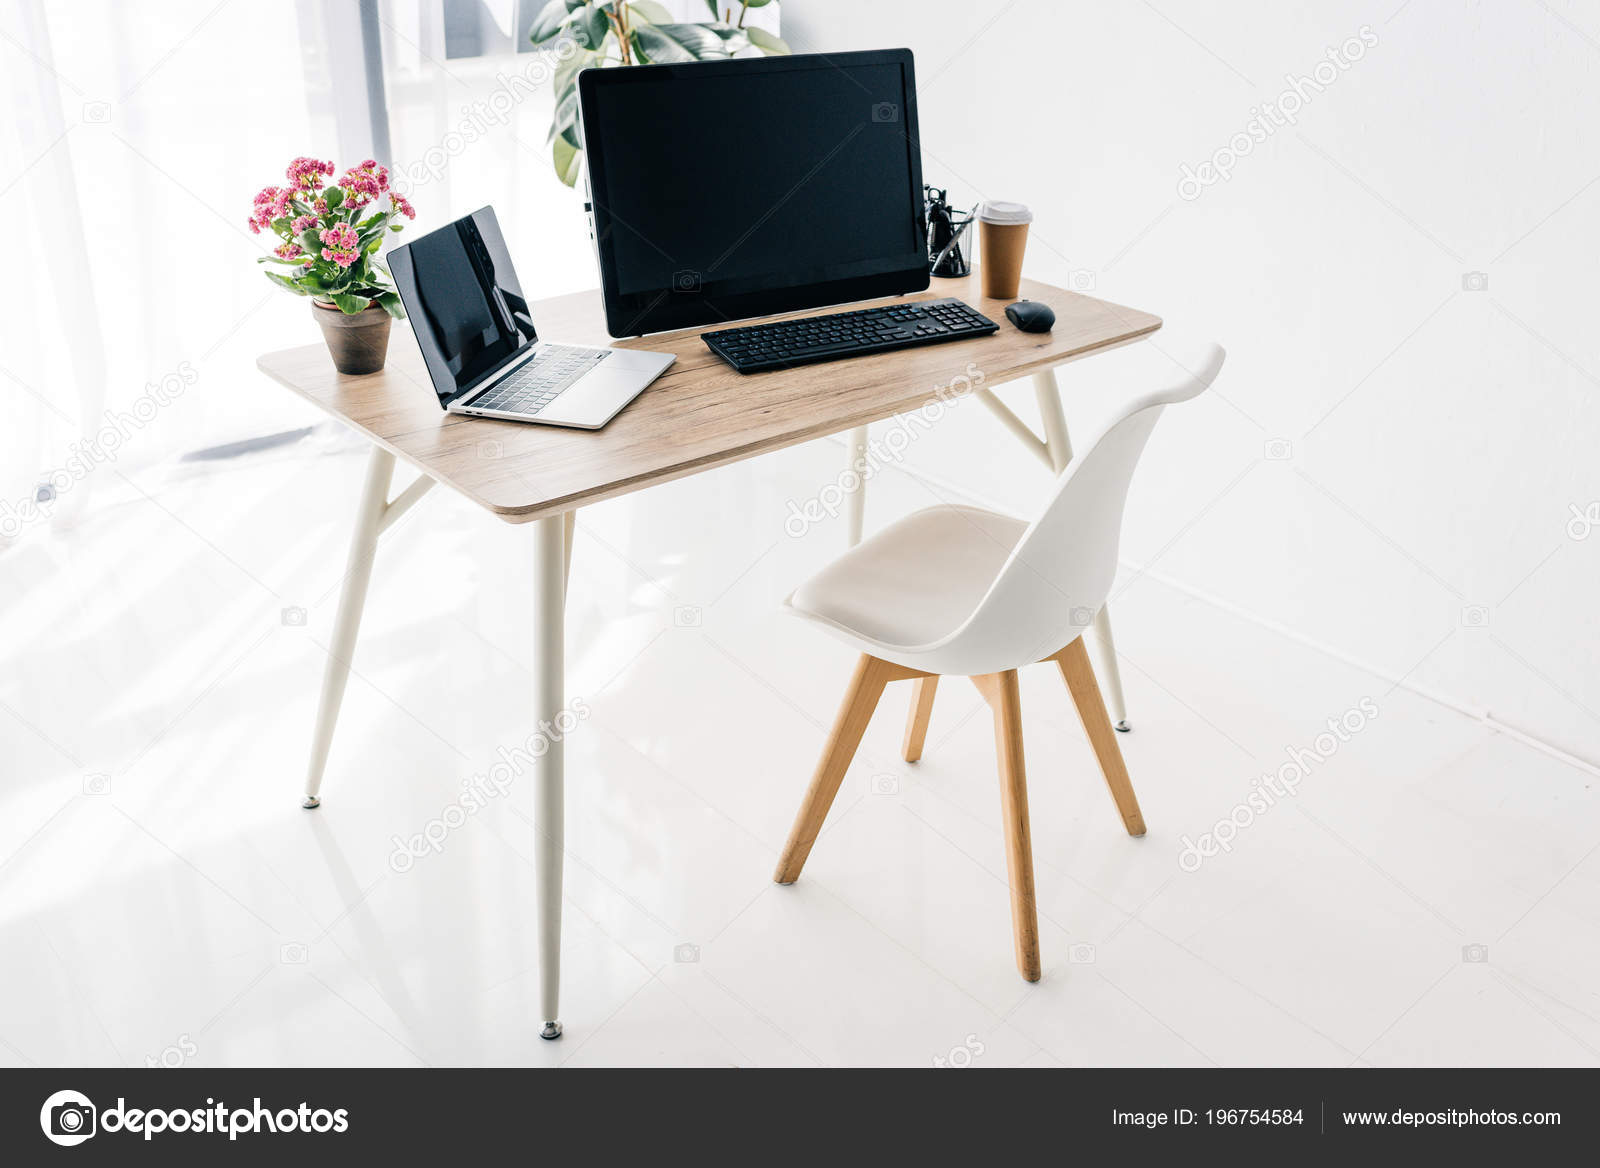 Interior Workplace Chair Flowers Coffee Stationery Laptop